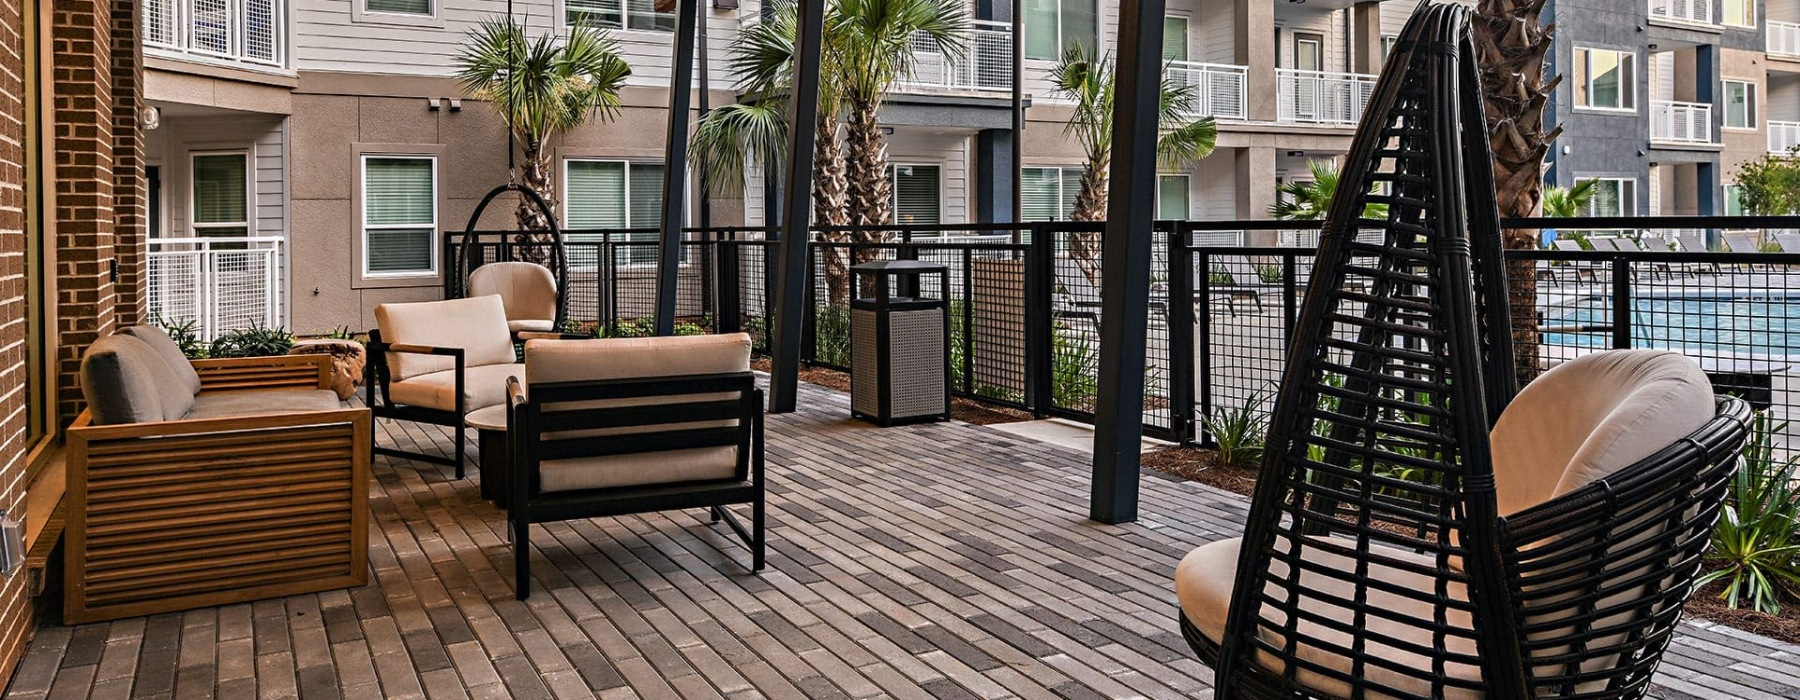 outdoor lounge area with modern wooden decor and spacious seating